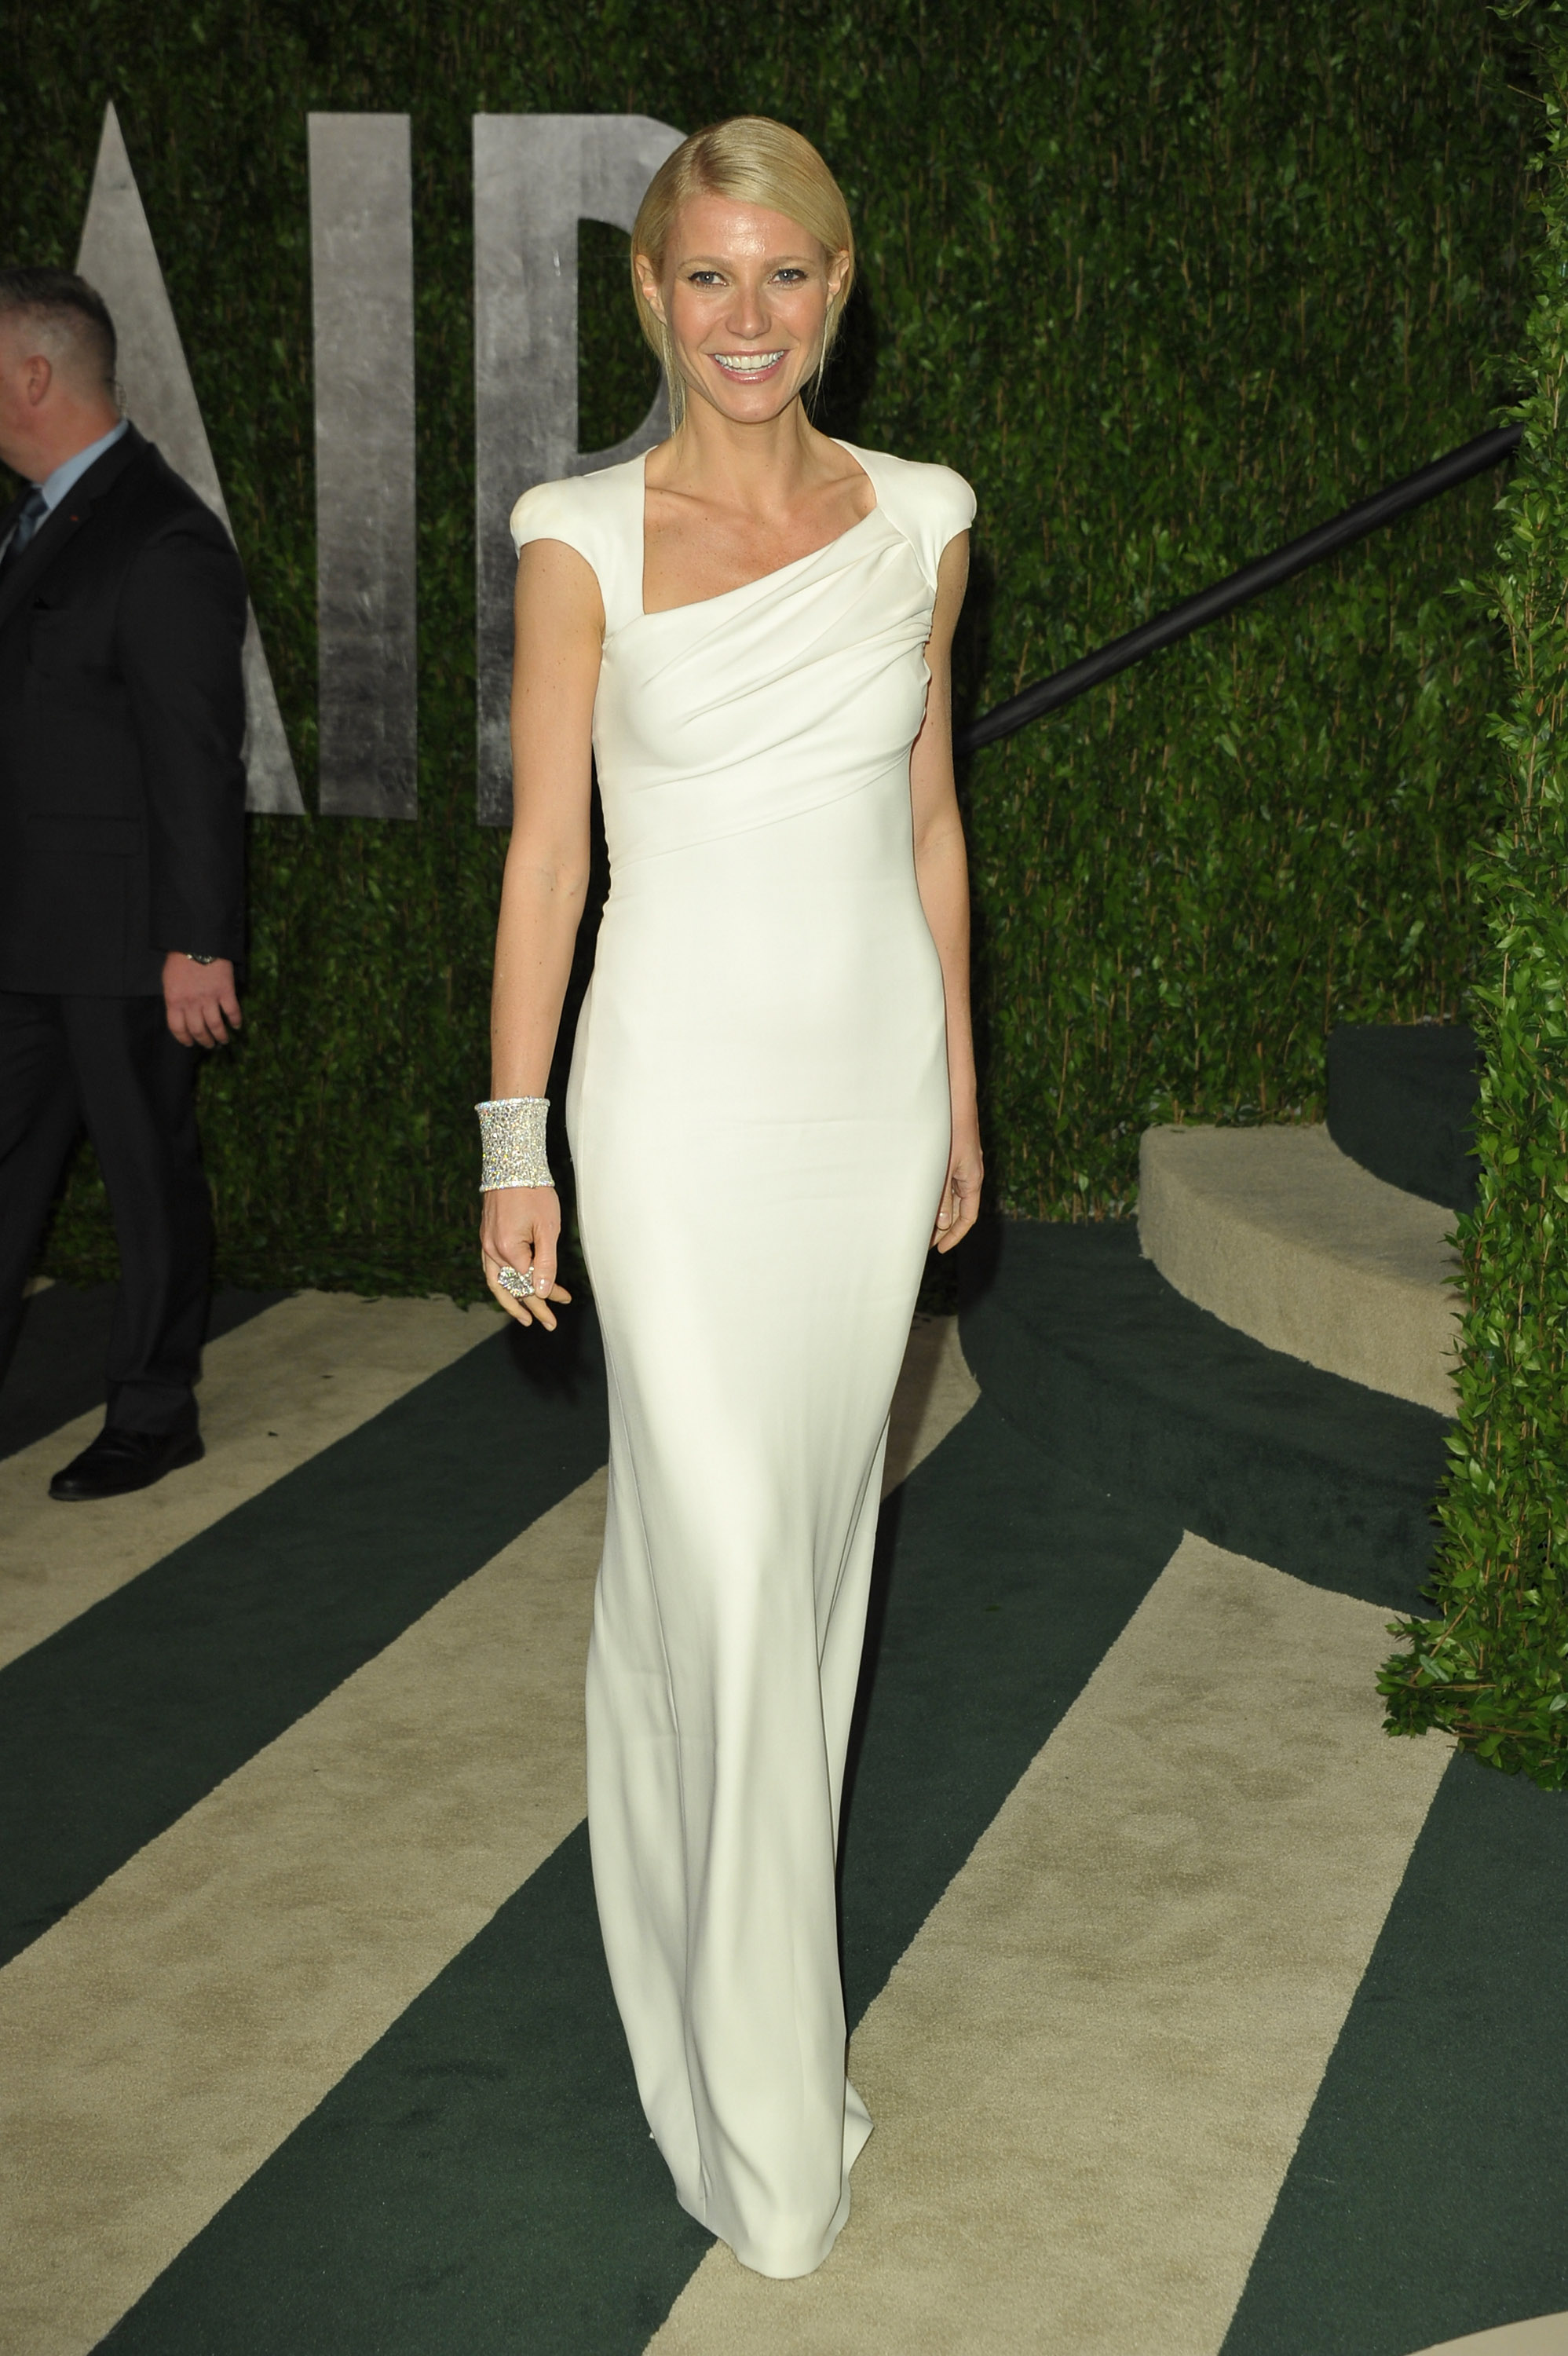 Gwyneth Paltrow arrives at the Vanity Fair party.